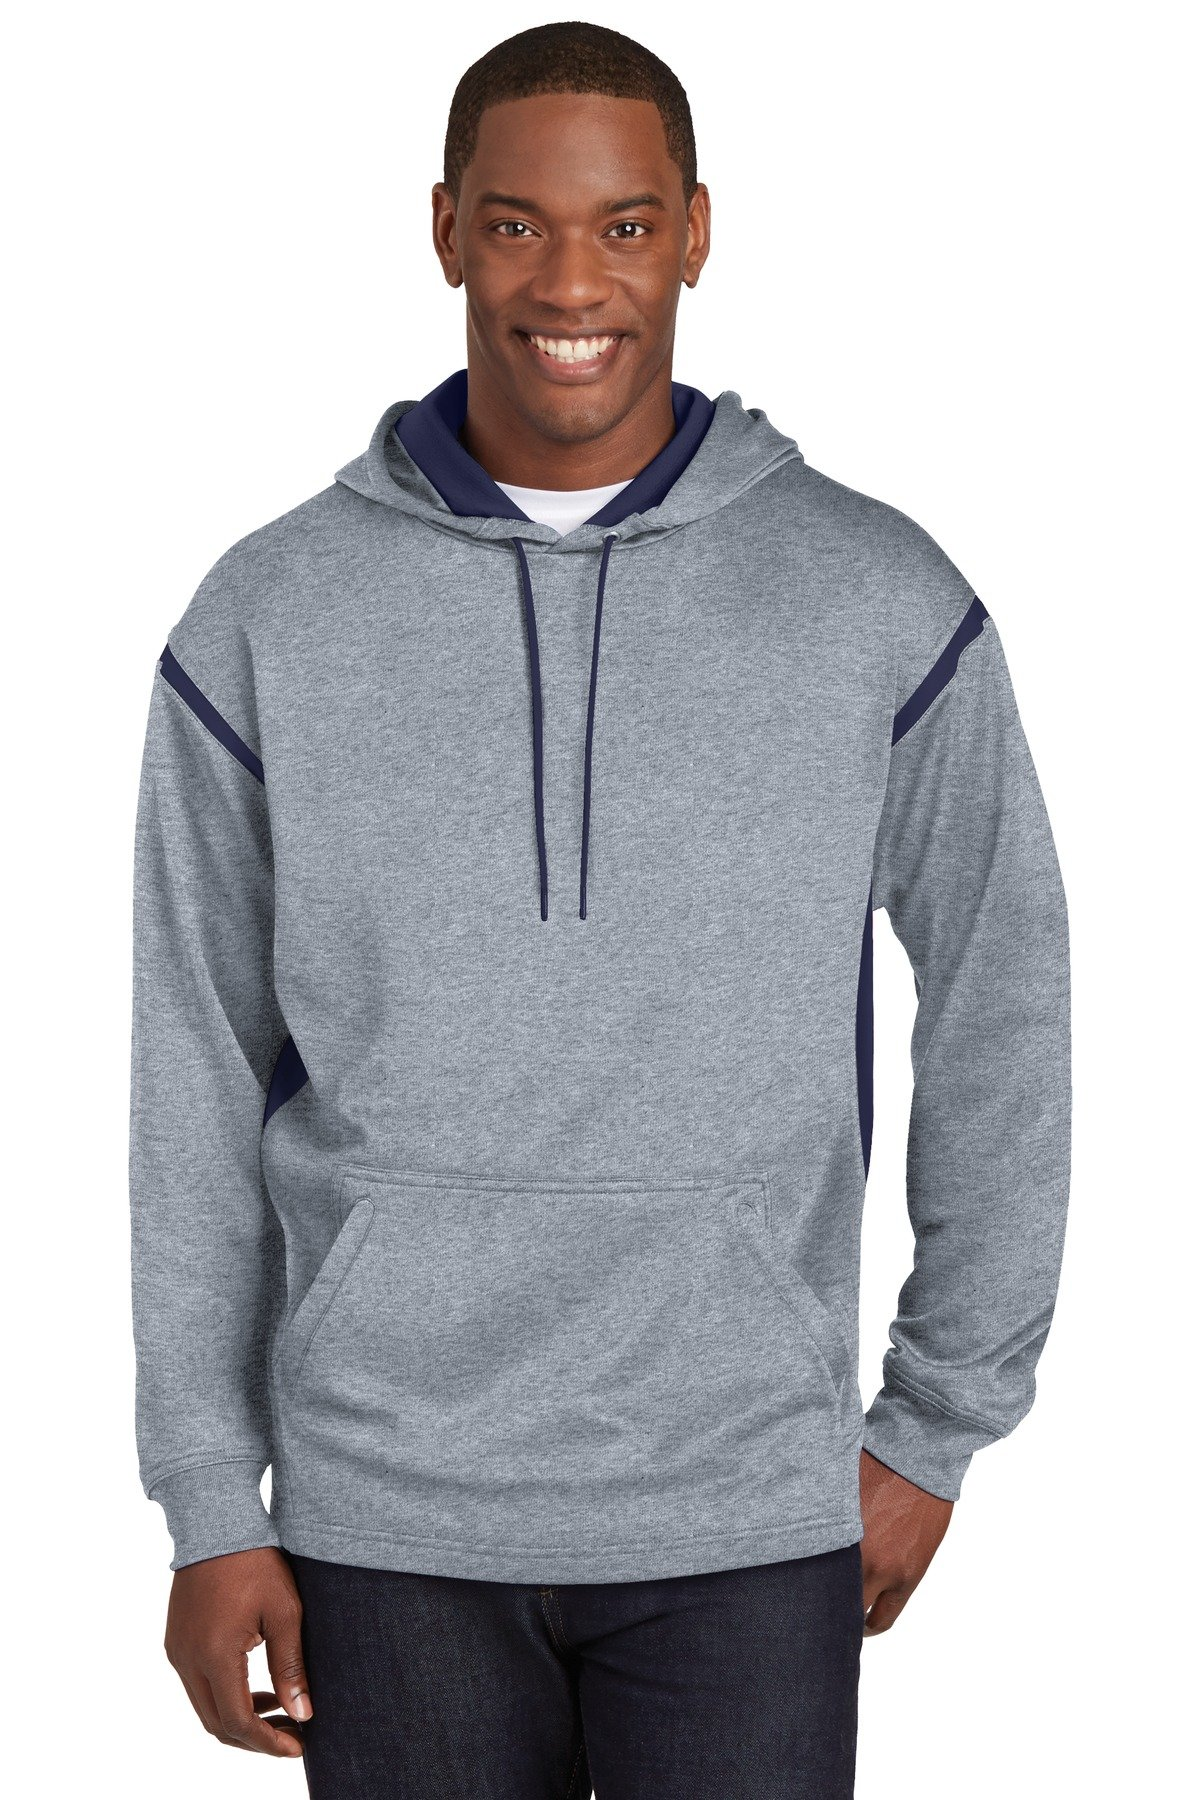 Sport-Tek Men's Tall Tech Fleece Colorblock Hooded LT Grey Heather/True Navy by Sport-Tek